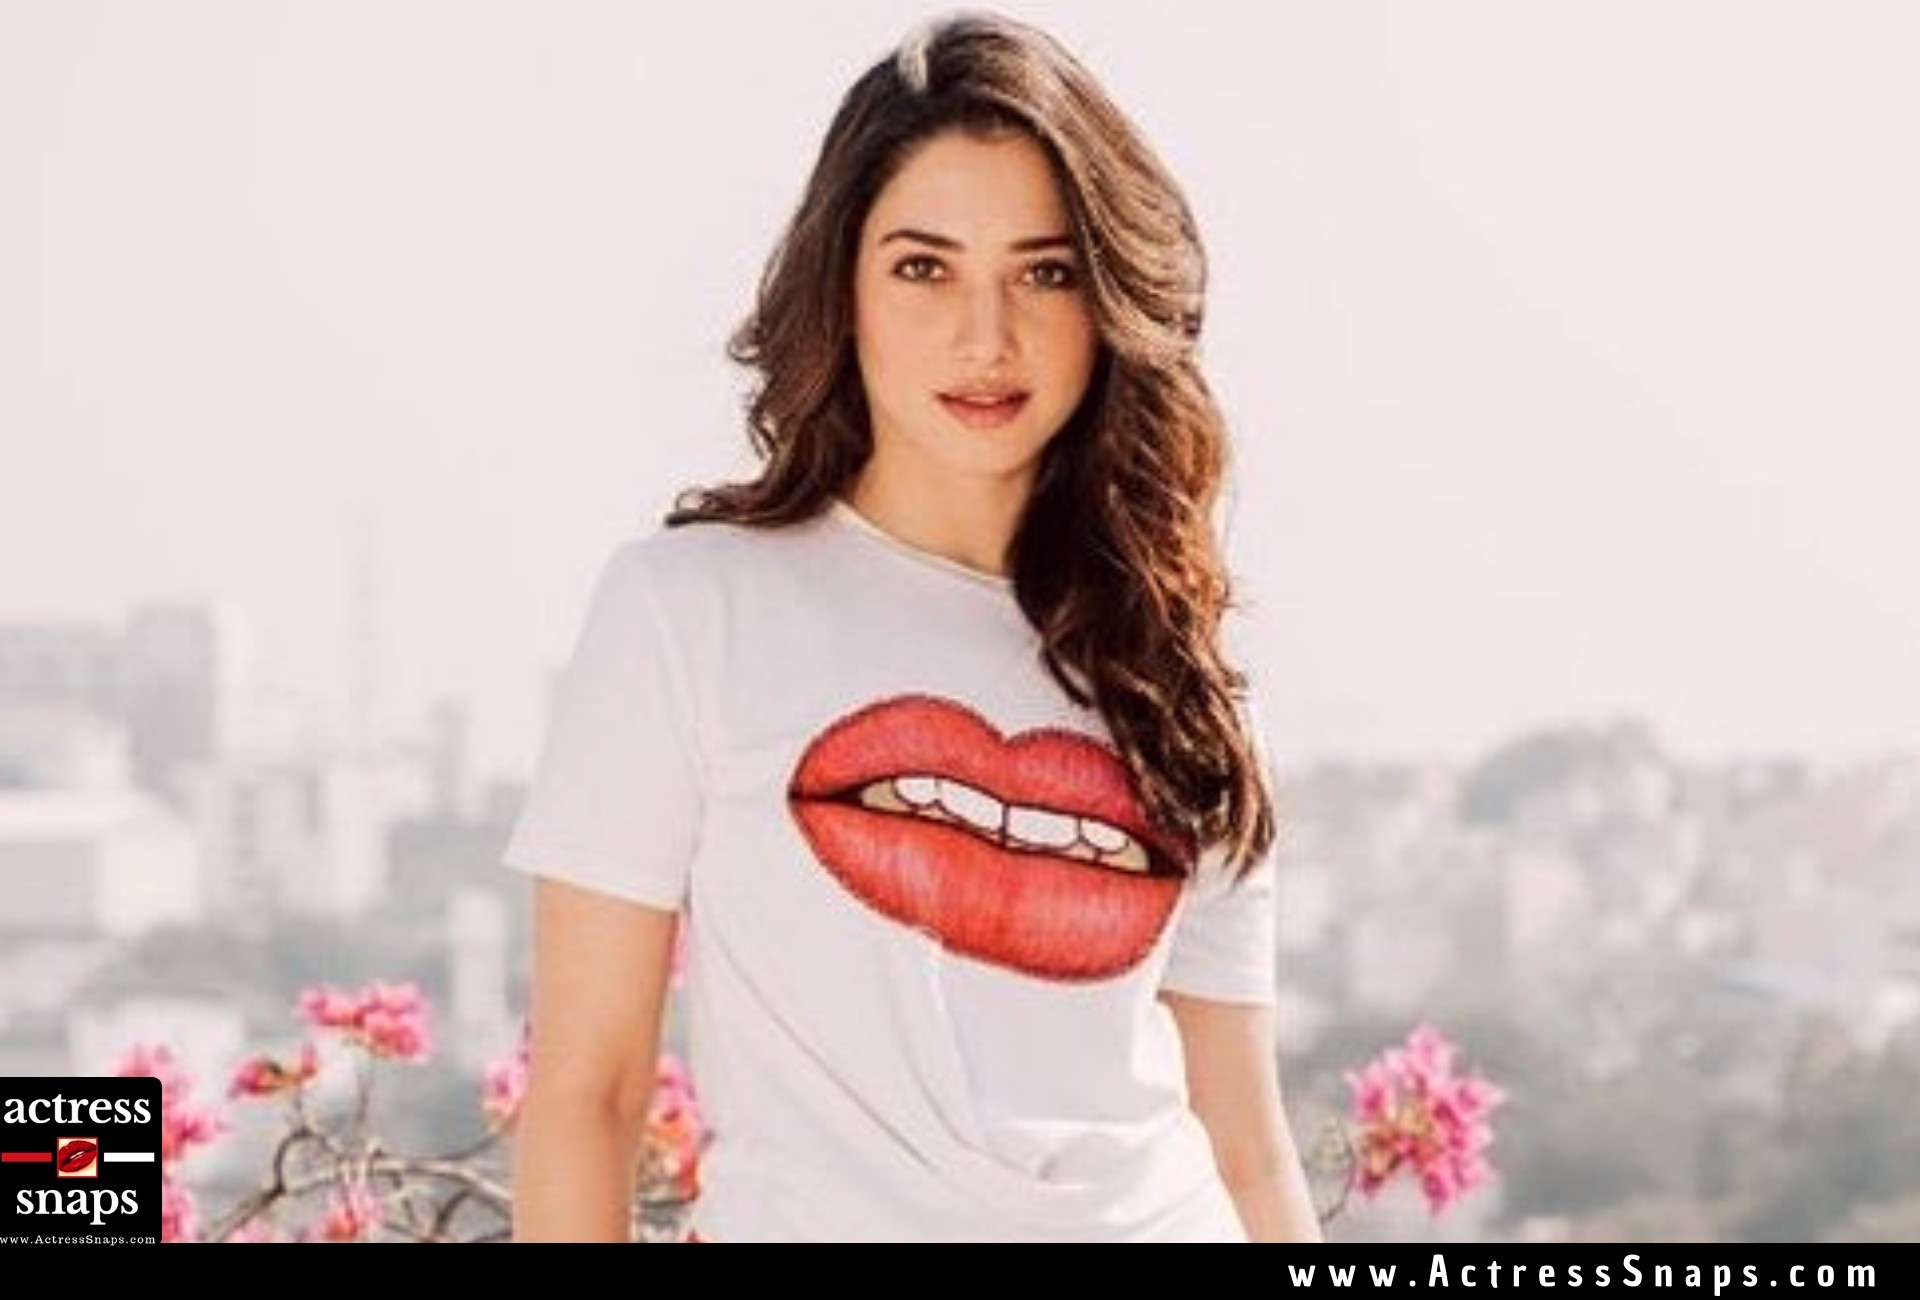 Tamannaah Bhatia looking extremely cute in this latest Photoshoot